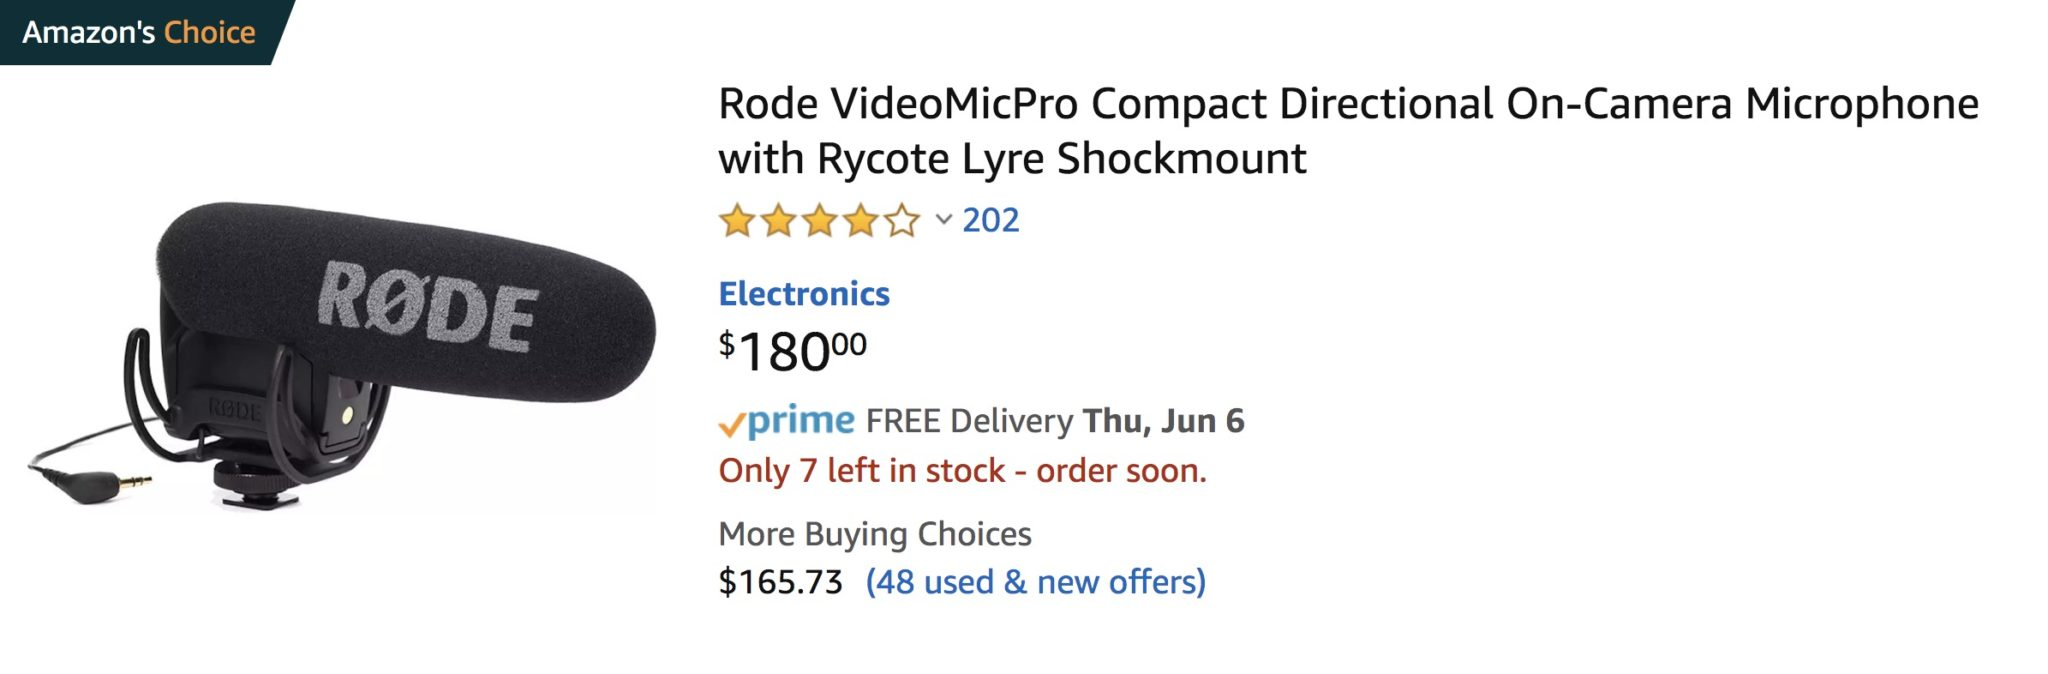 Rode Mic pro - perfect for small business video setup